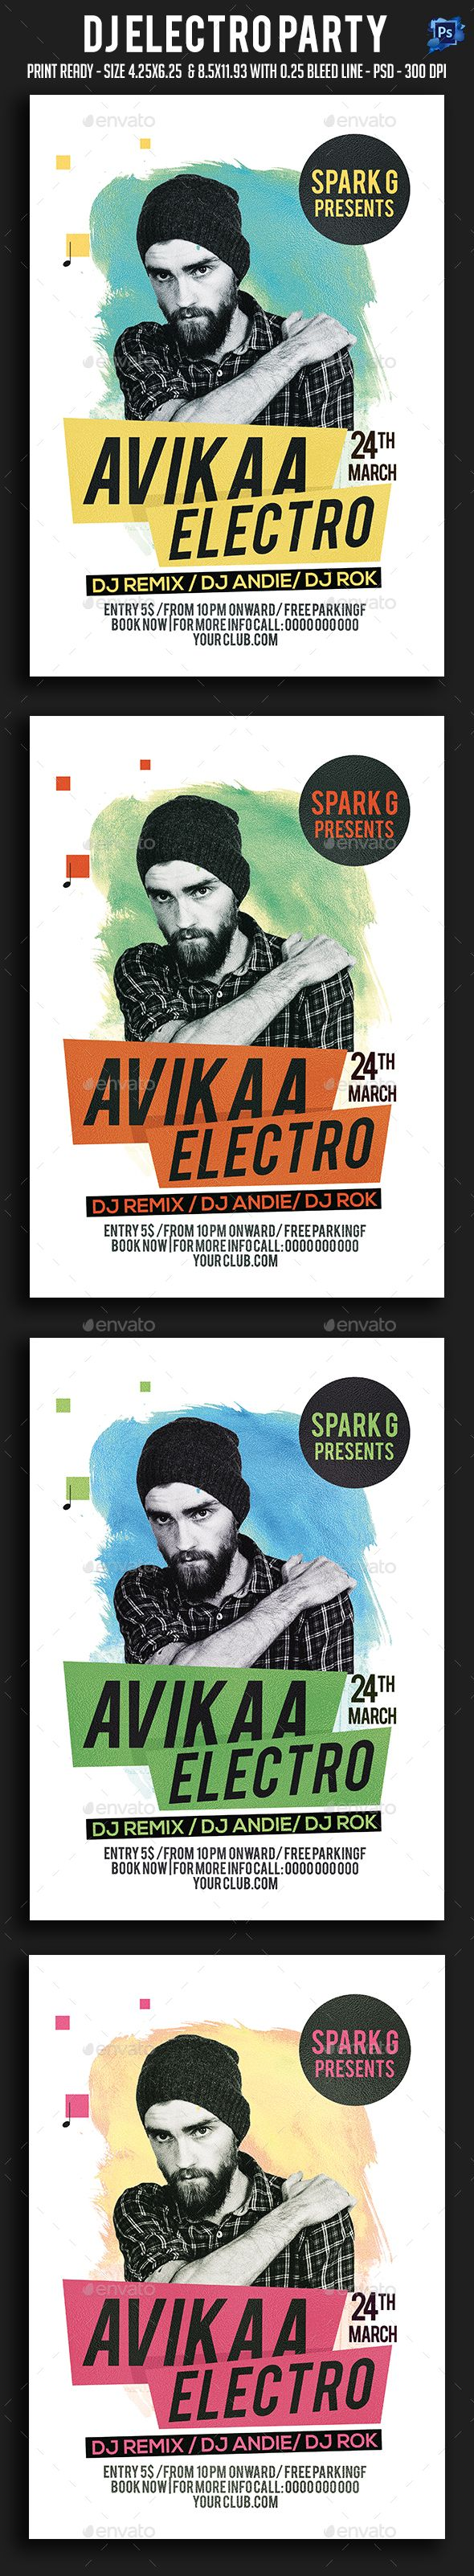 Dj Electro Party Flyer Template PSD